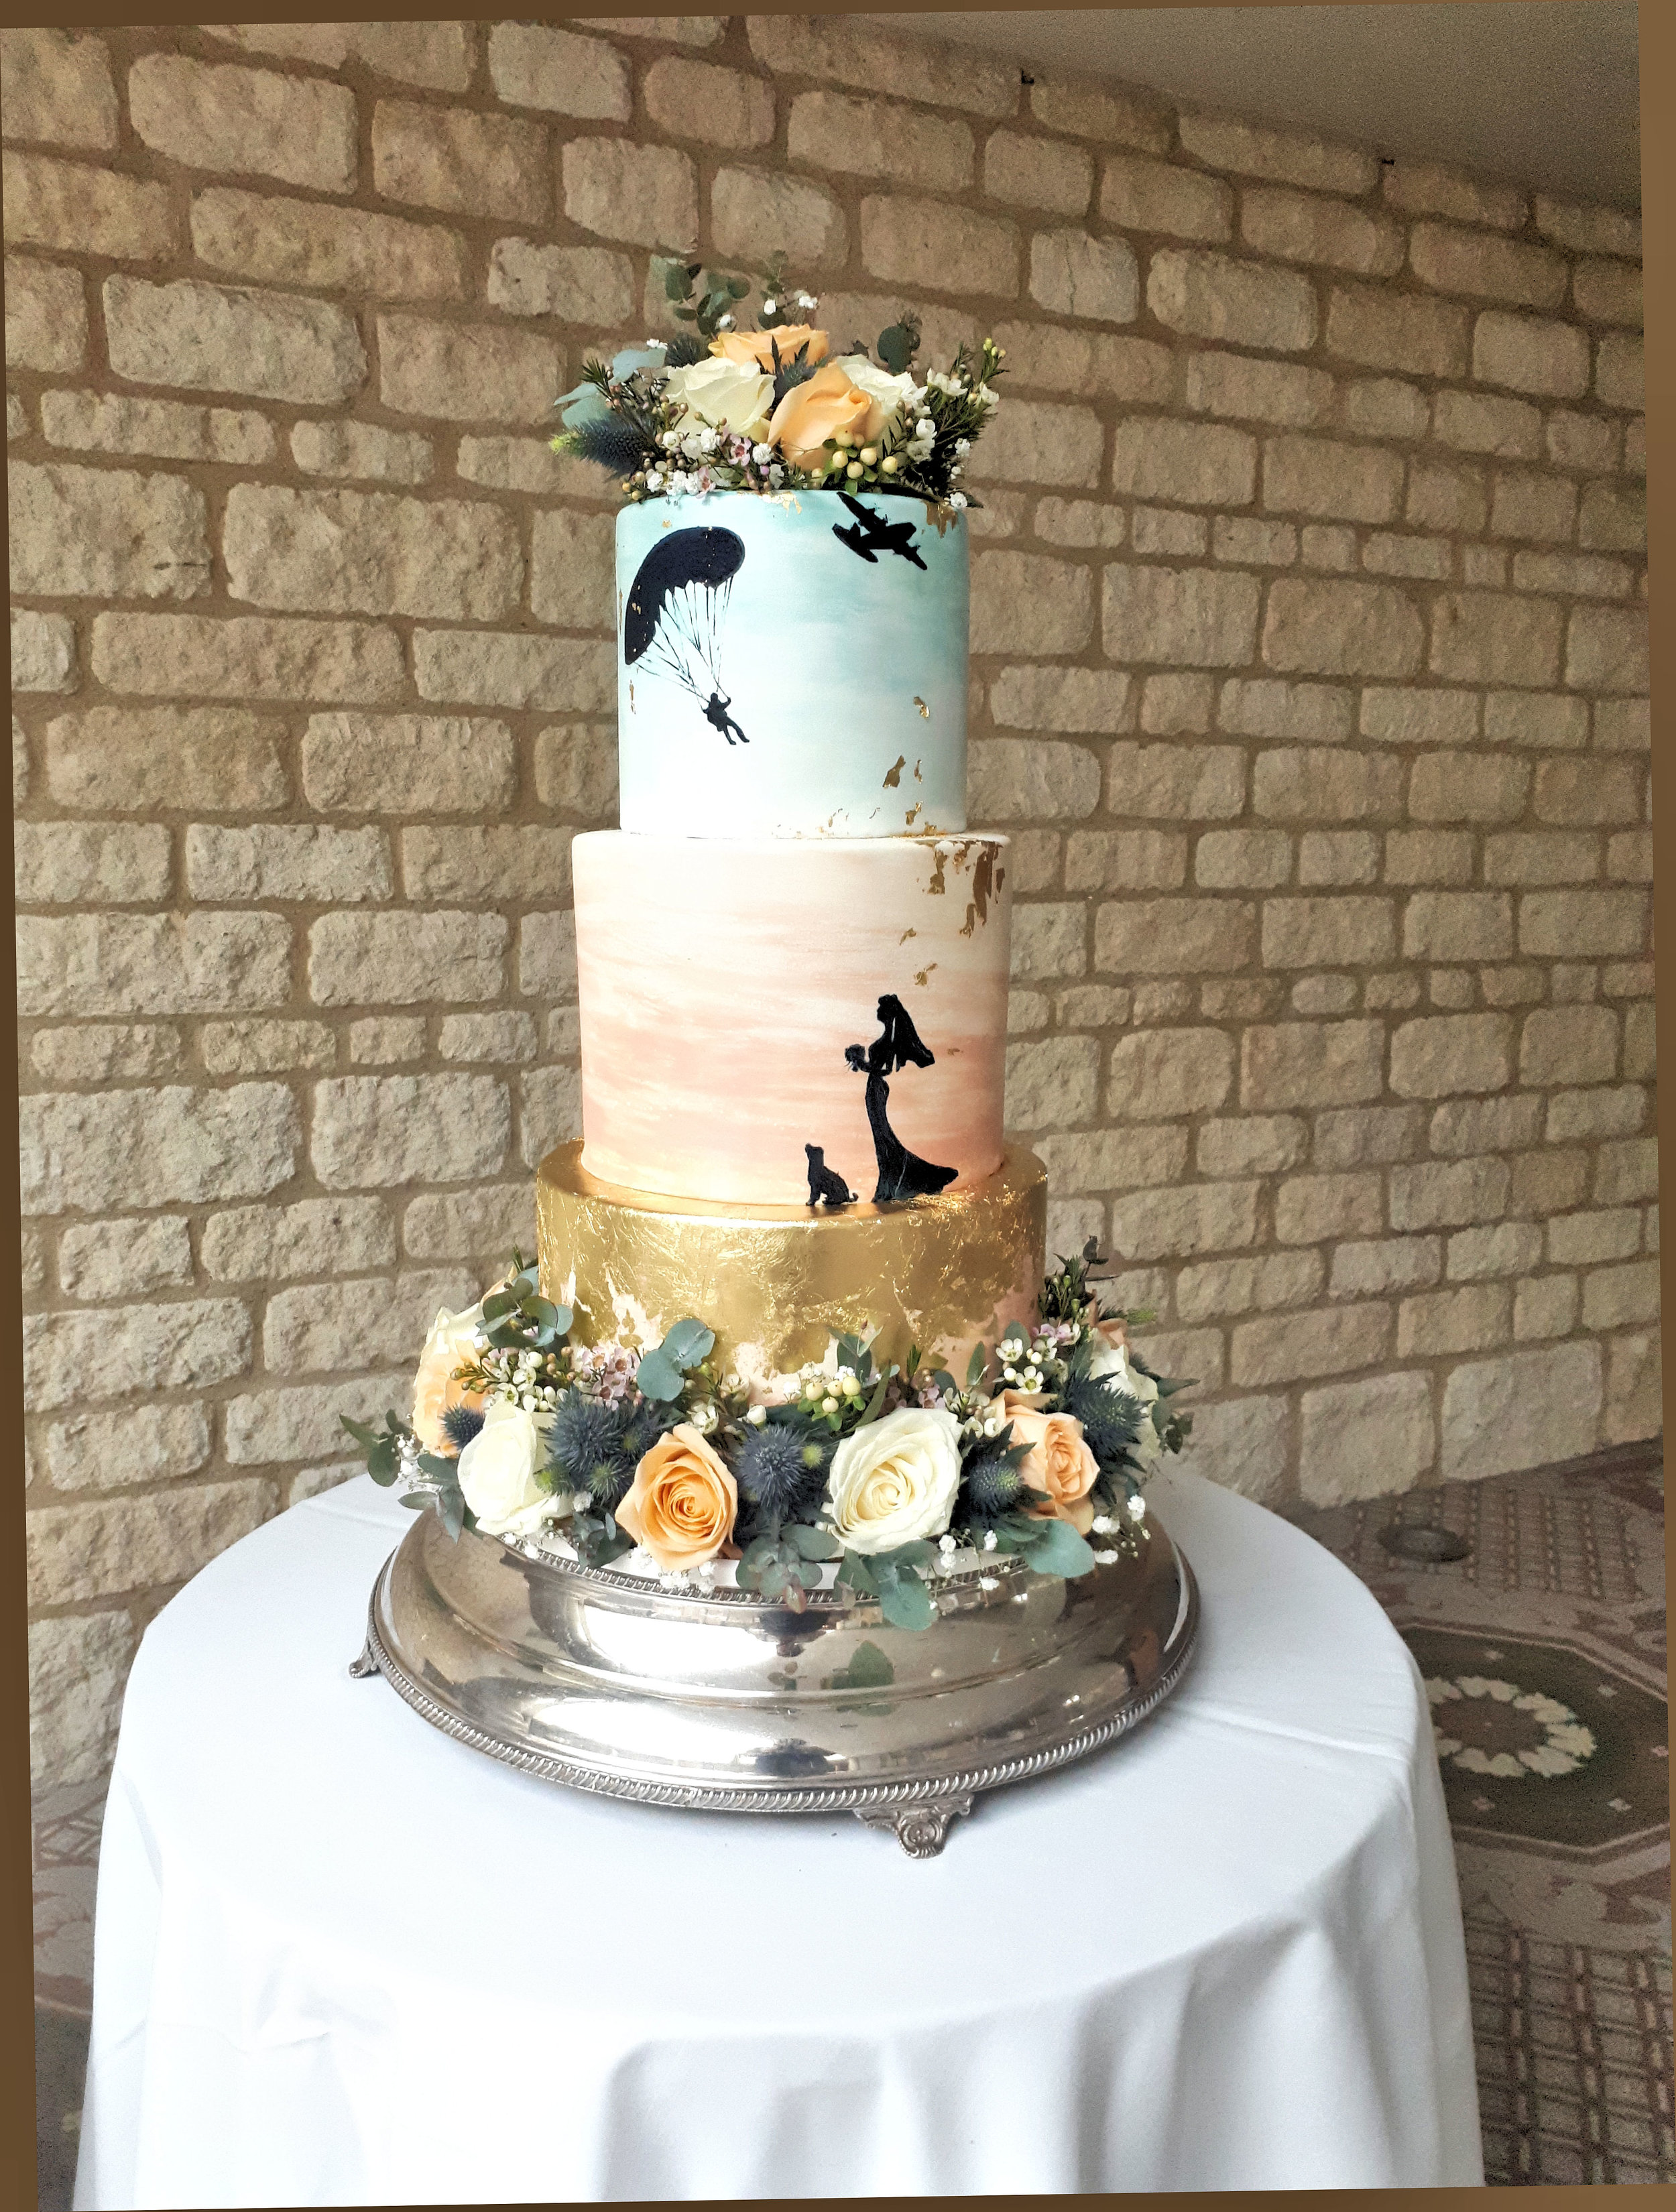 Silhouette Wedding Cake 1.jpg